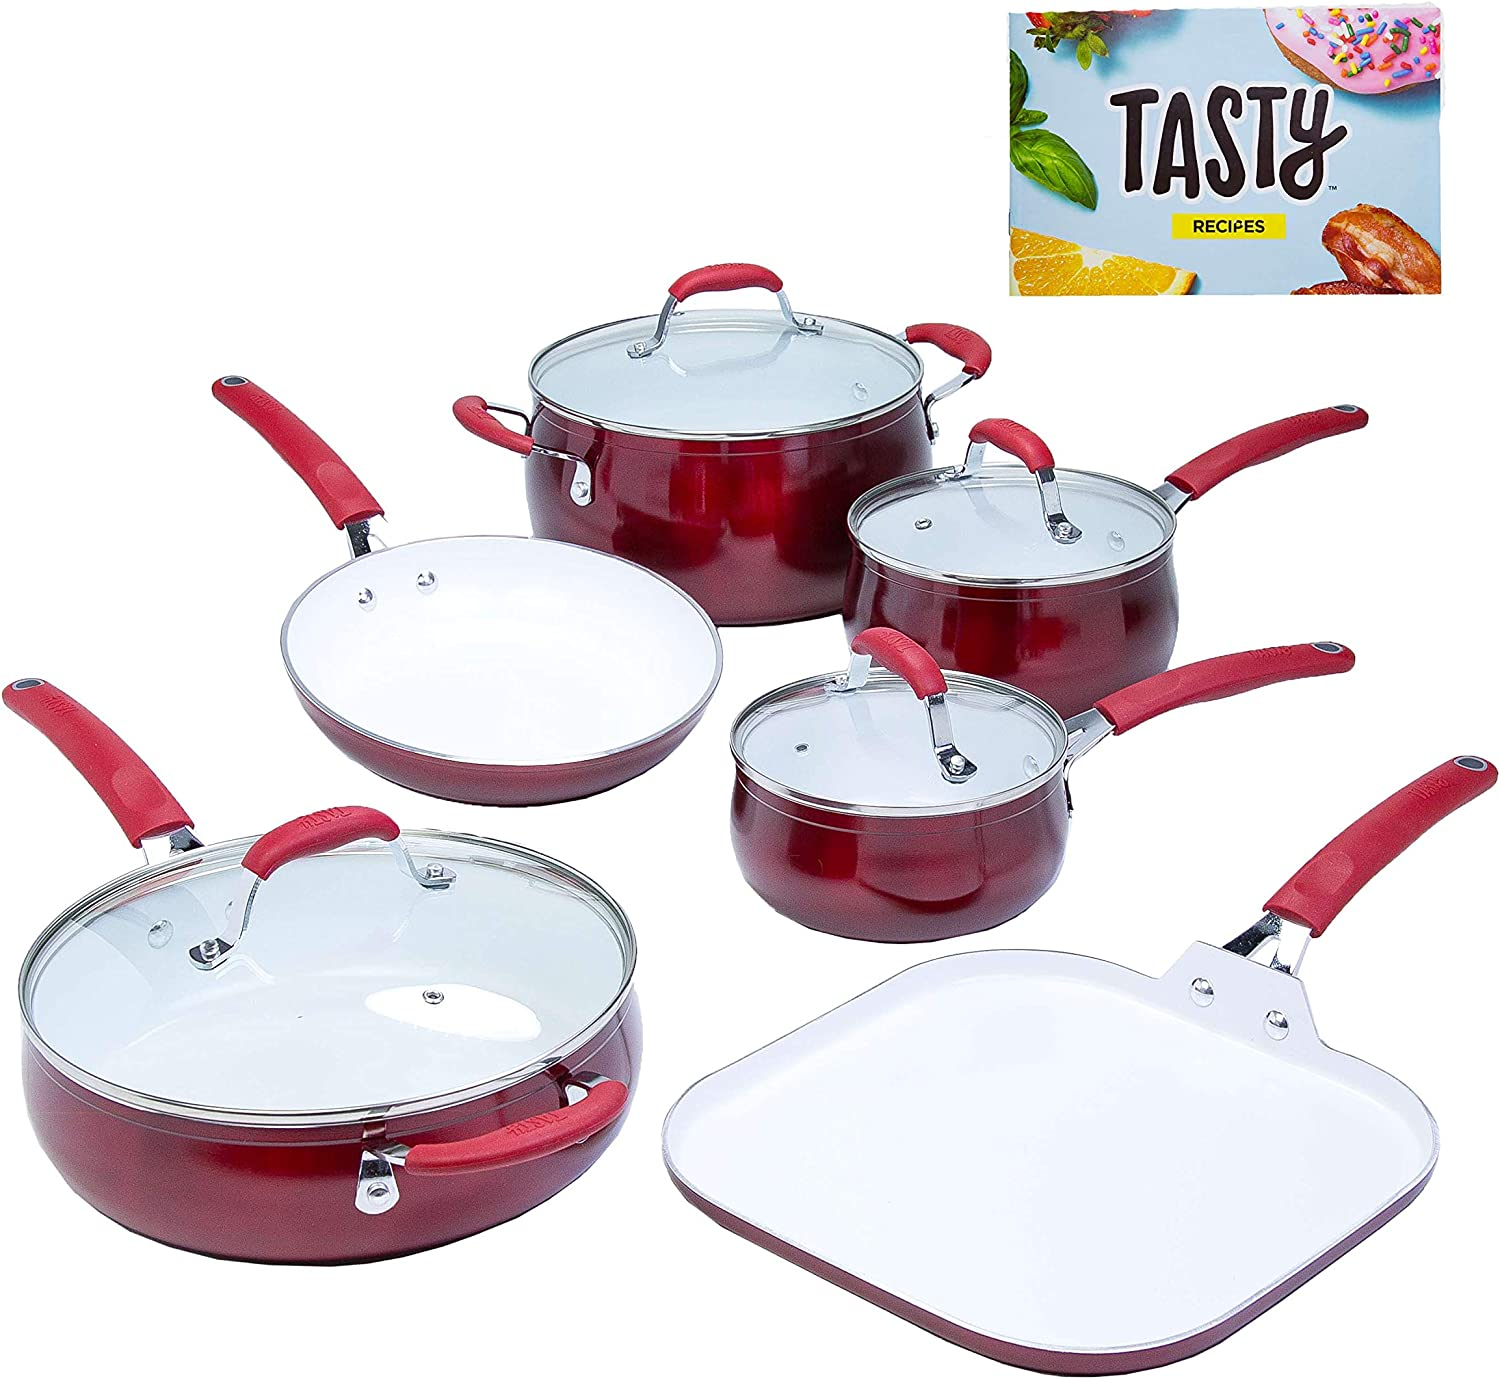 Tasty 11pc Cookware Set Non-Stick – Titanium Reinforced Ceramic , Red